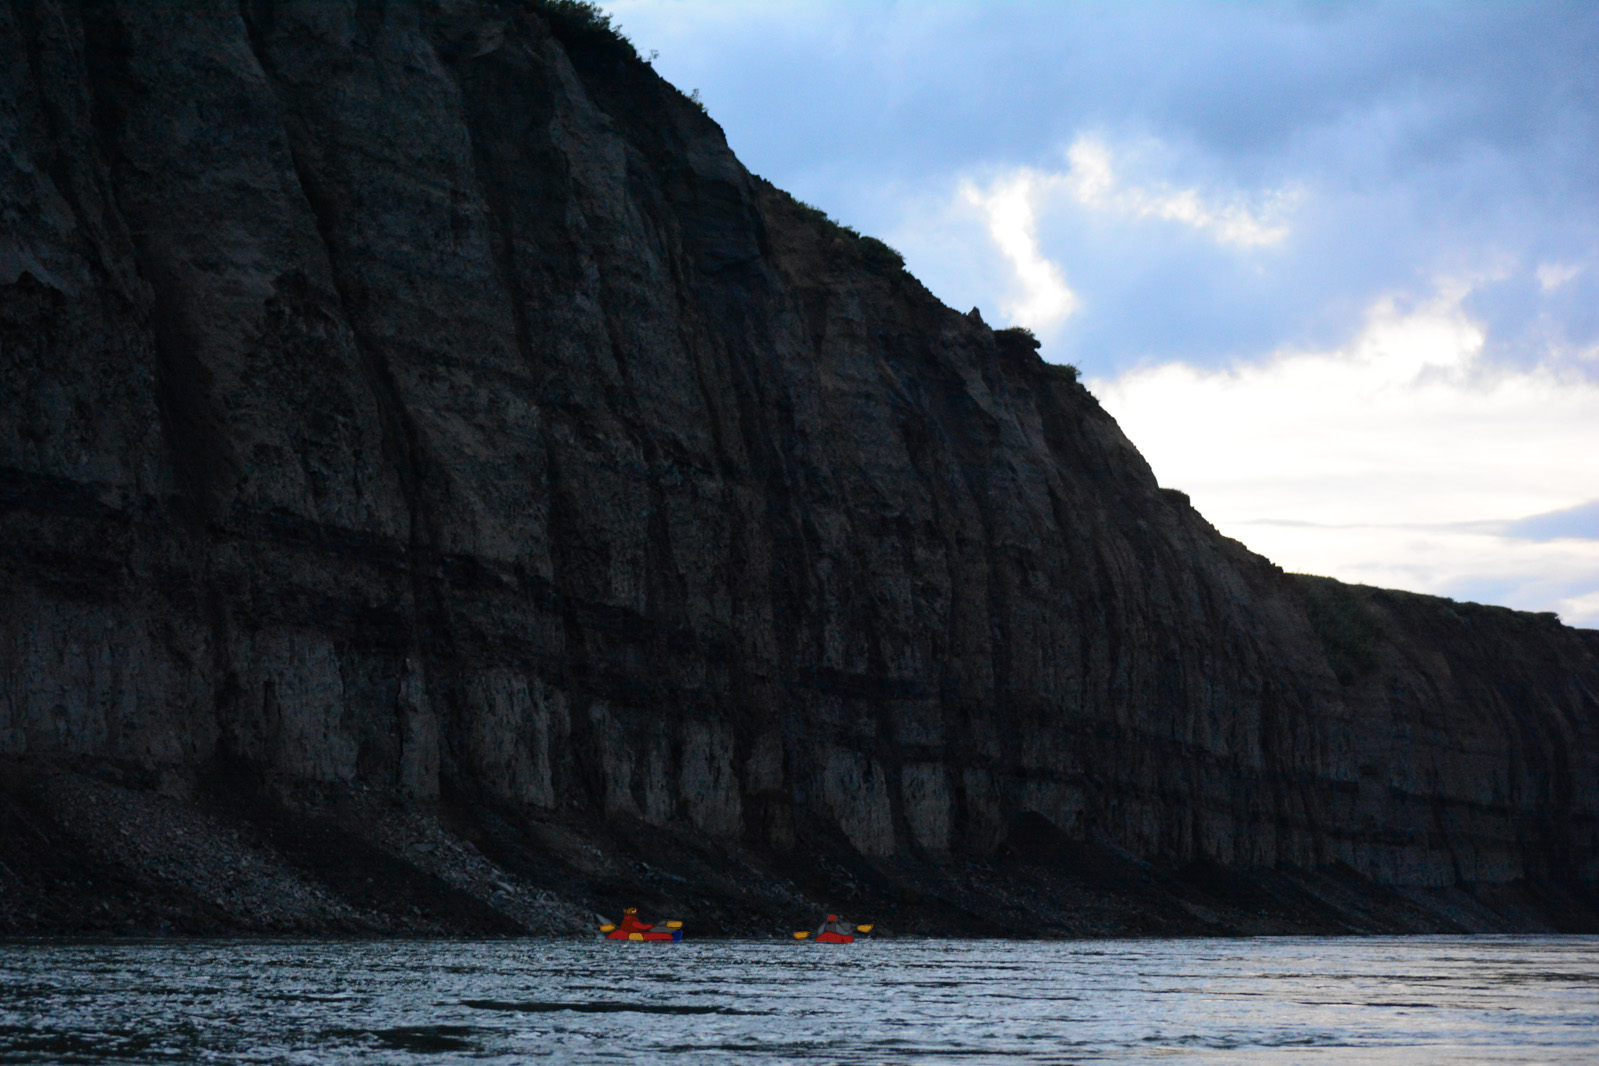 Two packrafters below the towering black bluffs of the Colville River at night